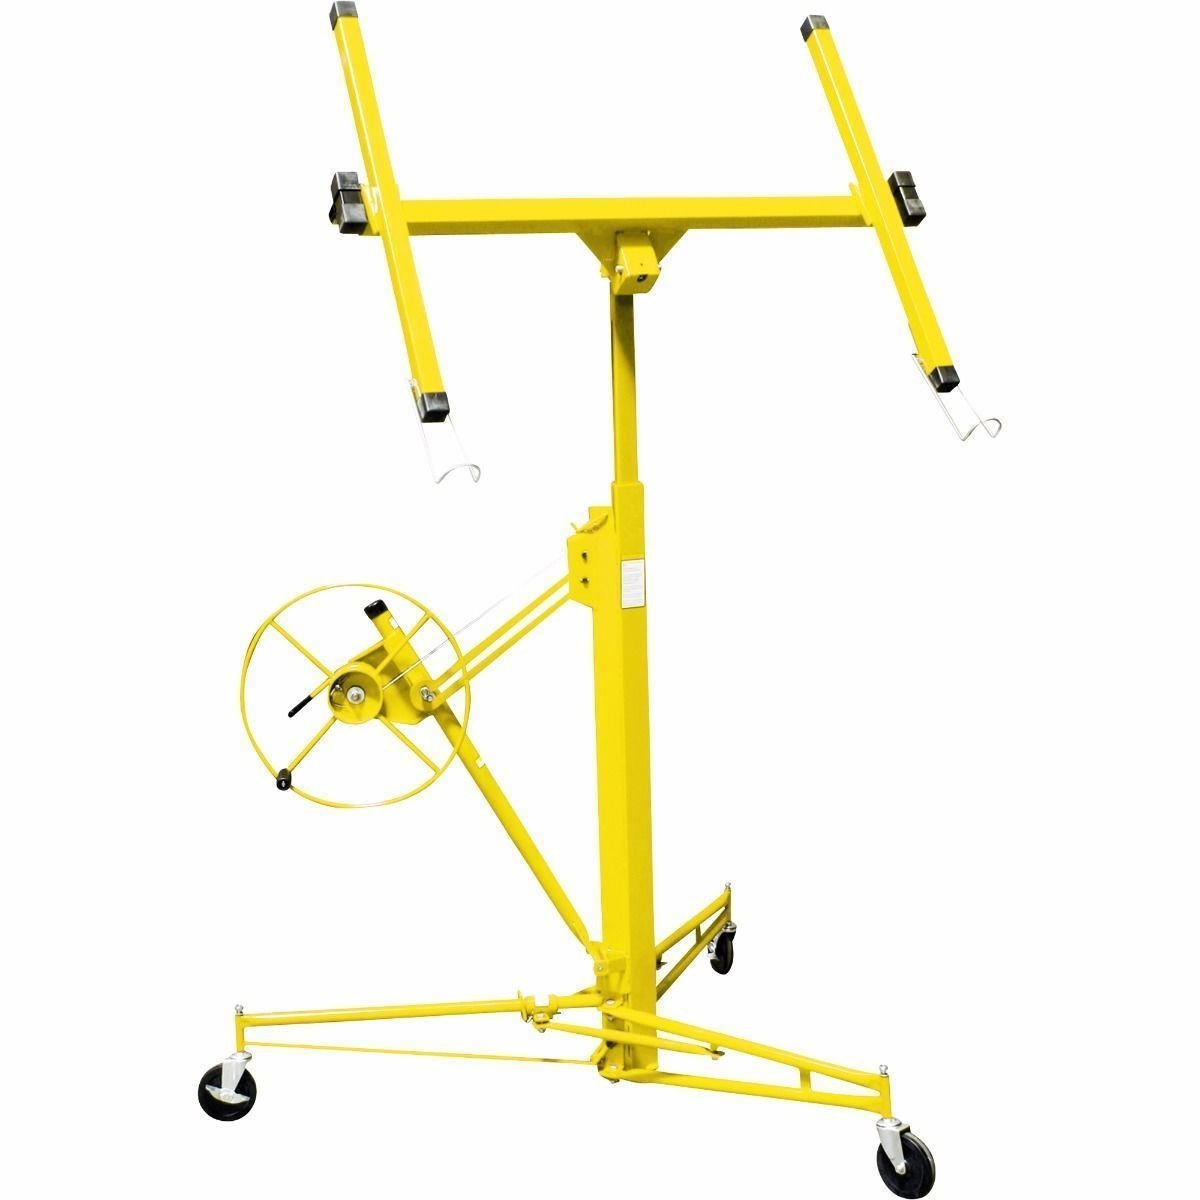 GHP Yellow 150Lbs Max Load Rolling Drywall Lifter Panel Hoist Jack with 4'' Casters